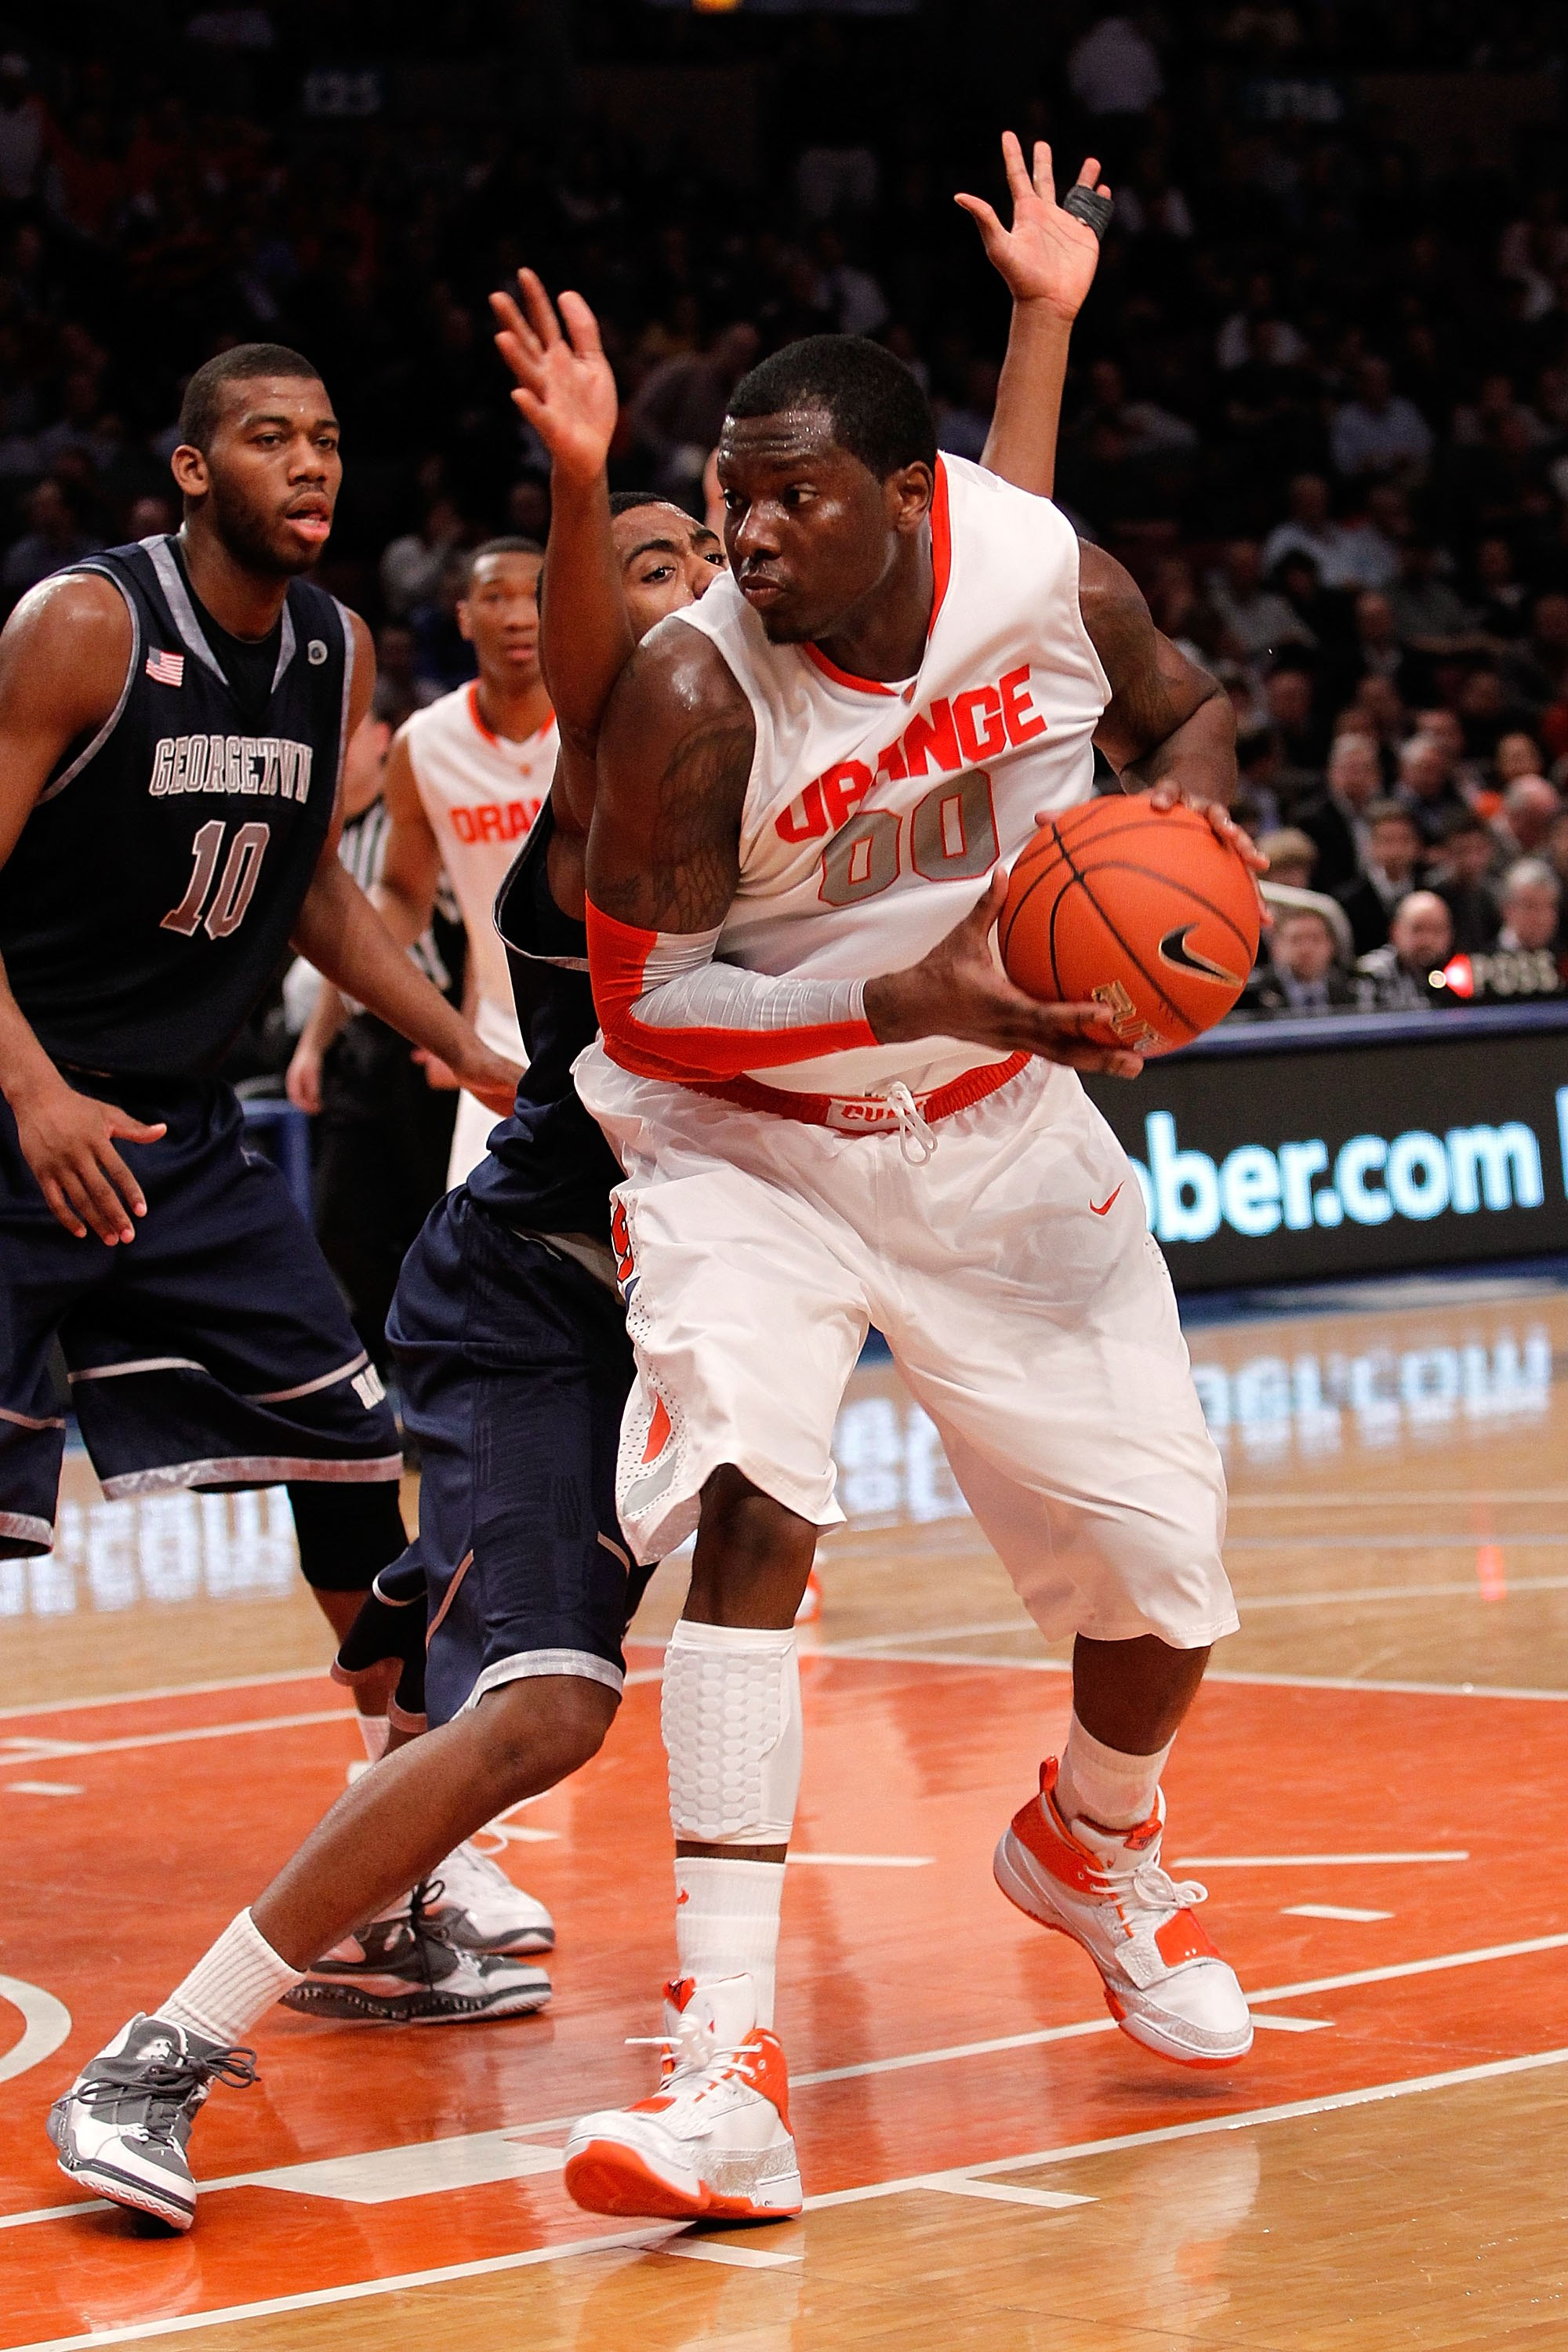 NEW YORK - MARCH 11:  Rick Jackson #00 of the Syracuse Orange handles the ball during the quarterfinal of the 2010 NCAA Big East Tournament at Madison Square Garden on March 11, 2010 in New York City.  (Photo by Michael Heiman/Getty Images)